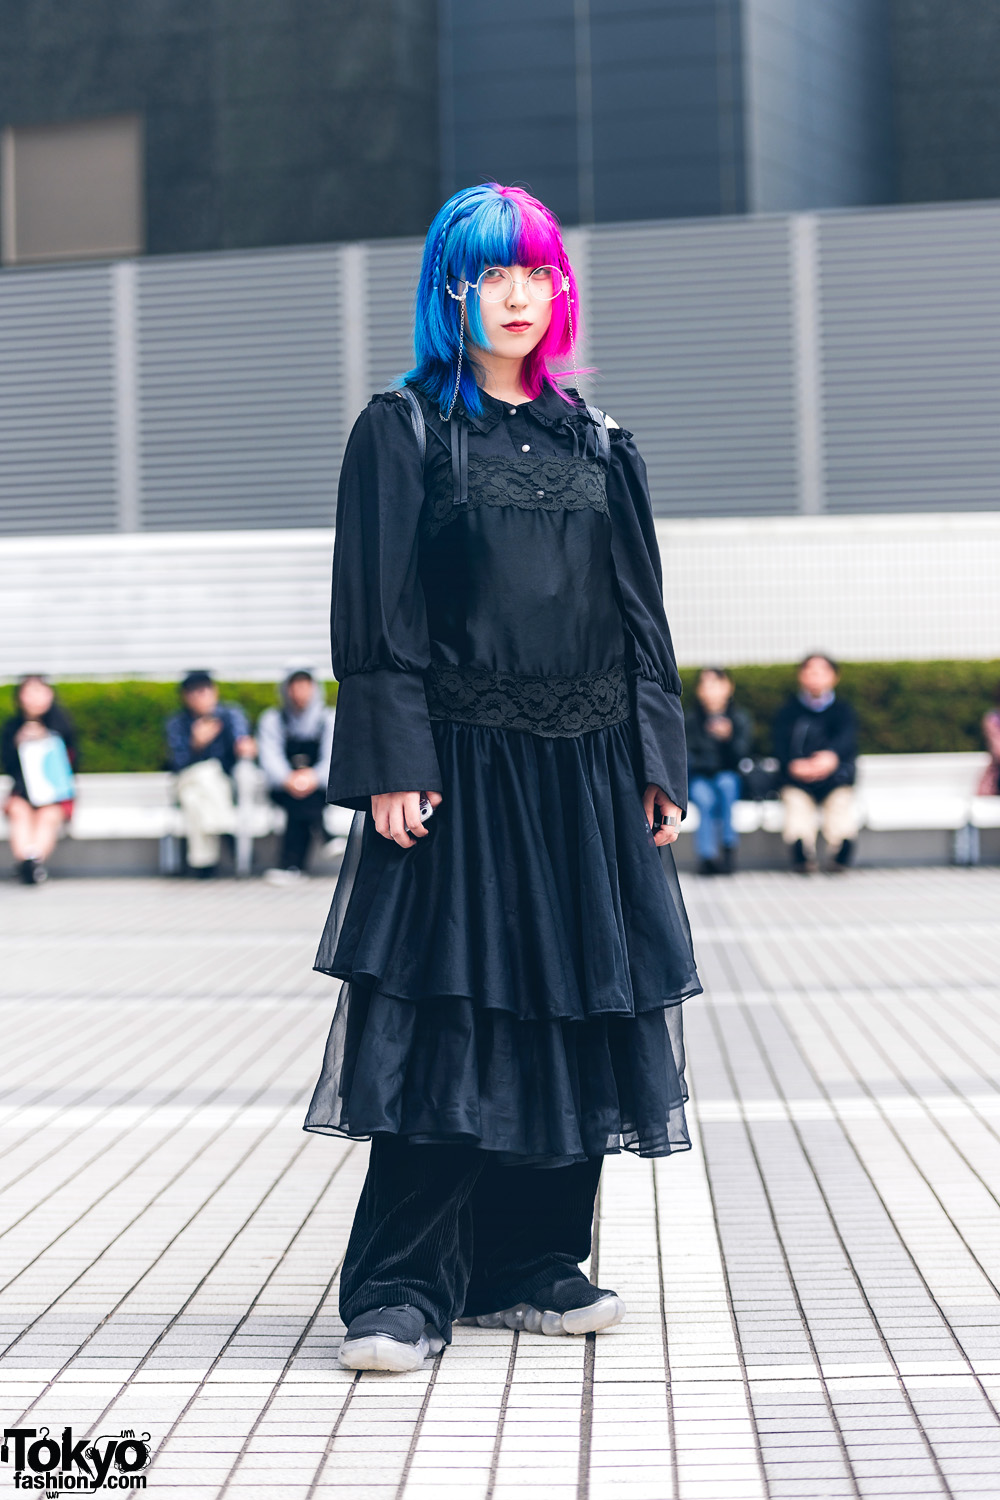 All Black Tokyo Street Style w/ Half Color Hair, Cut-Out Shoulder Dress, Corduroy Pants, Leather Backpack & Sneakers